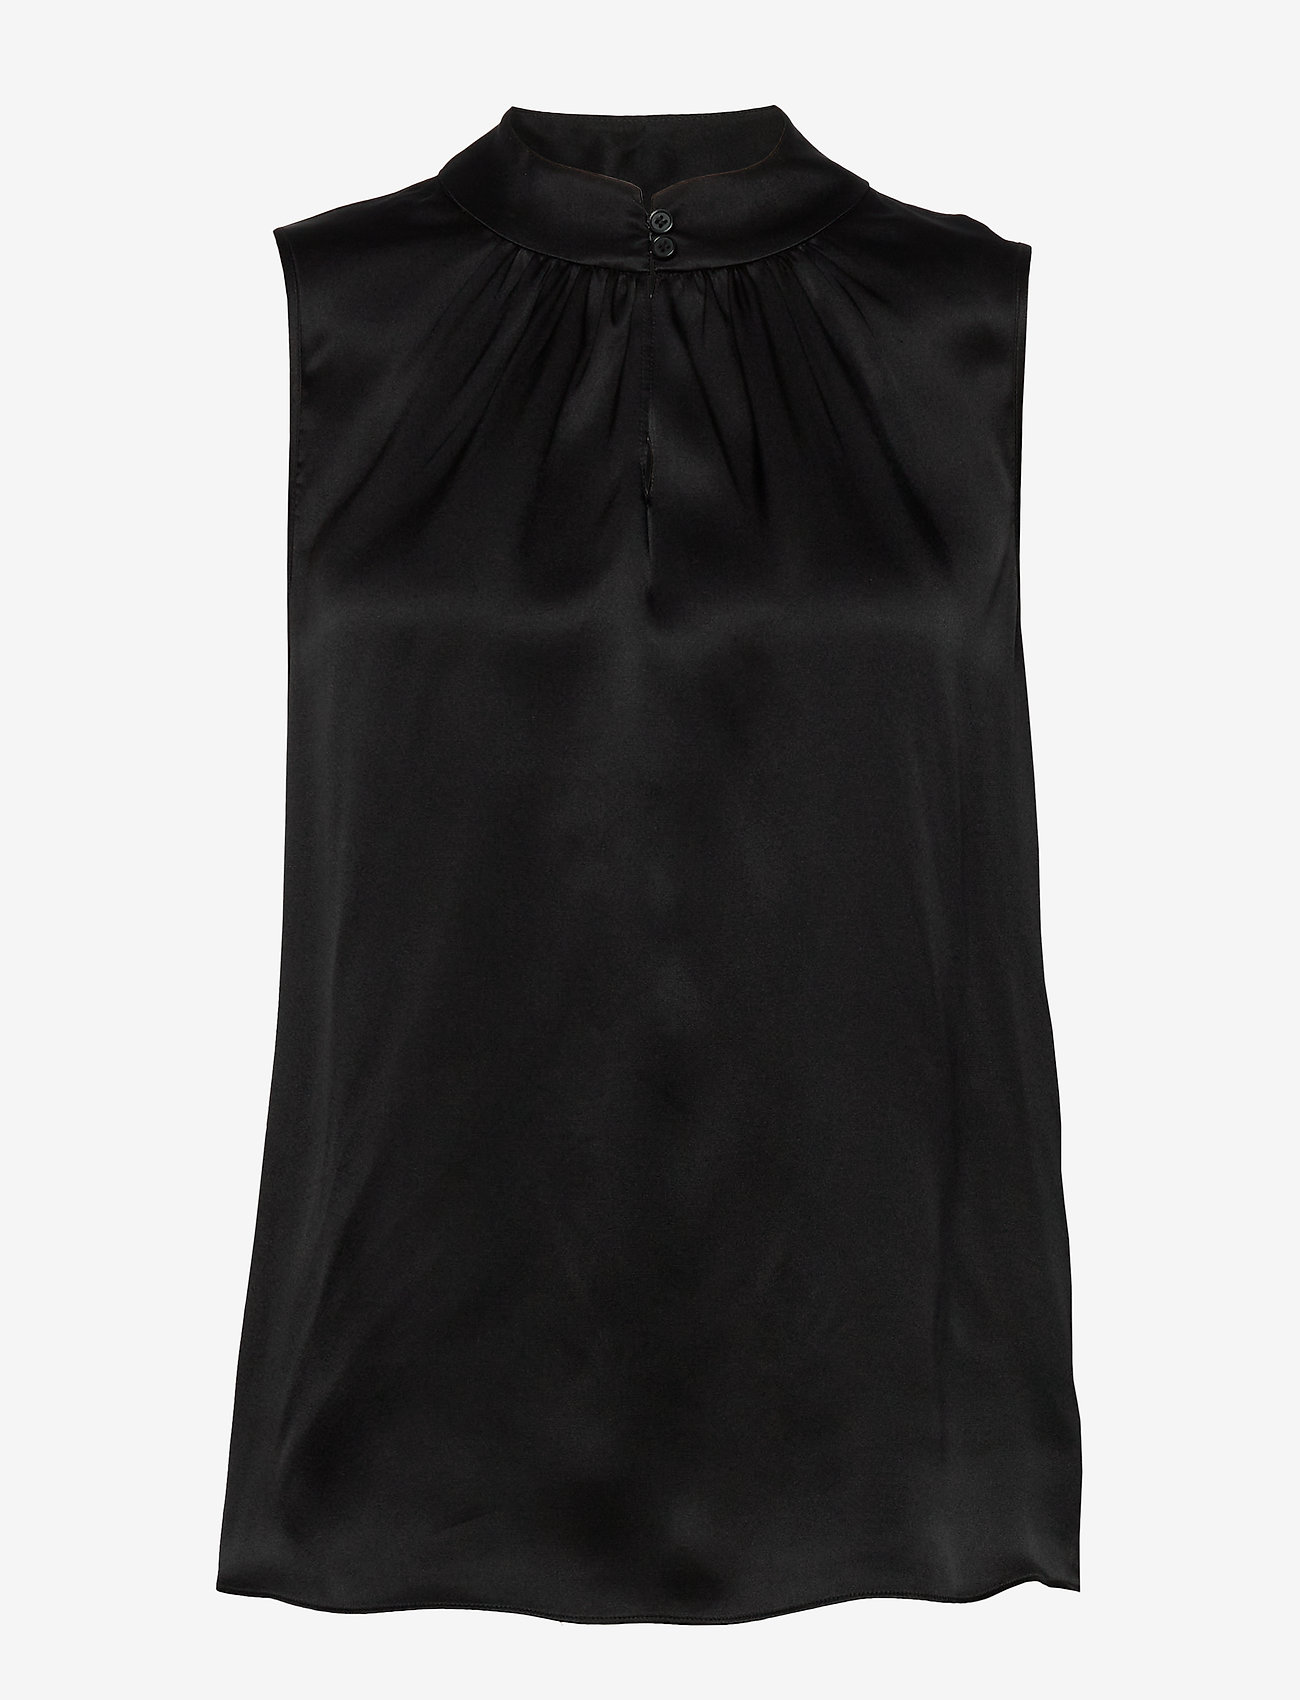 SAND - Double Silk - Prosi Top - blouses sans manches - black - 0